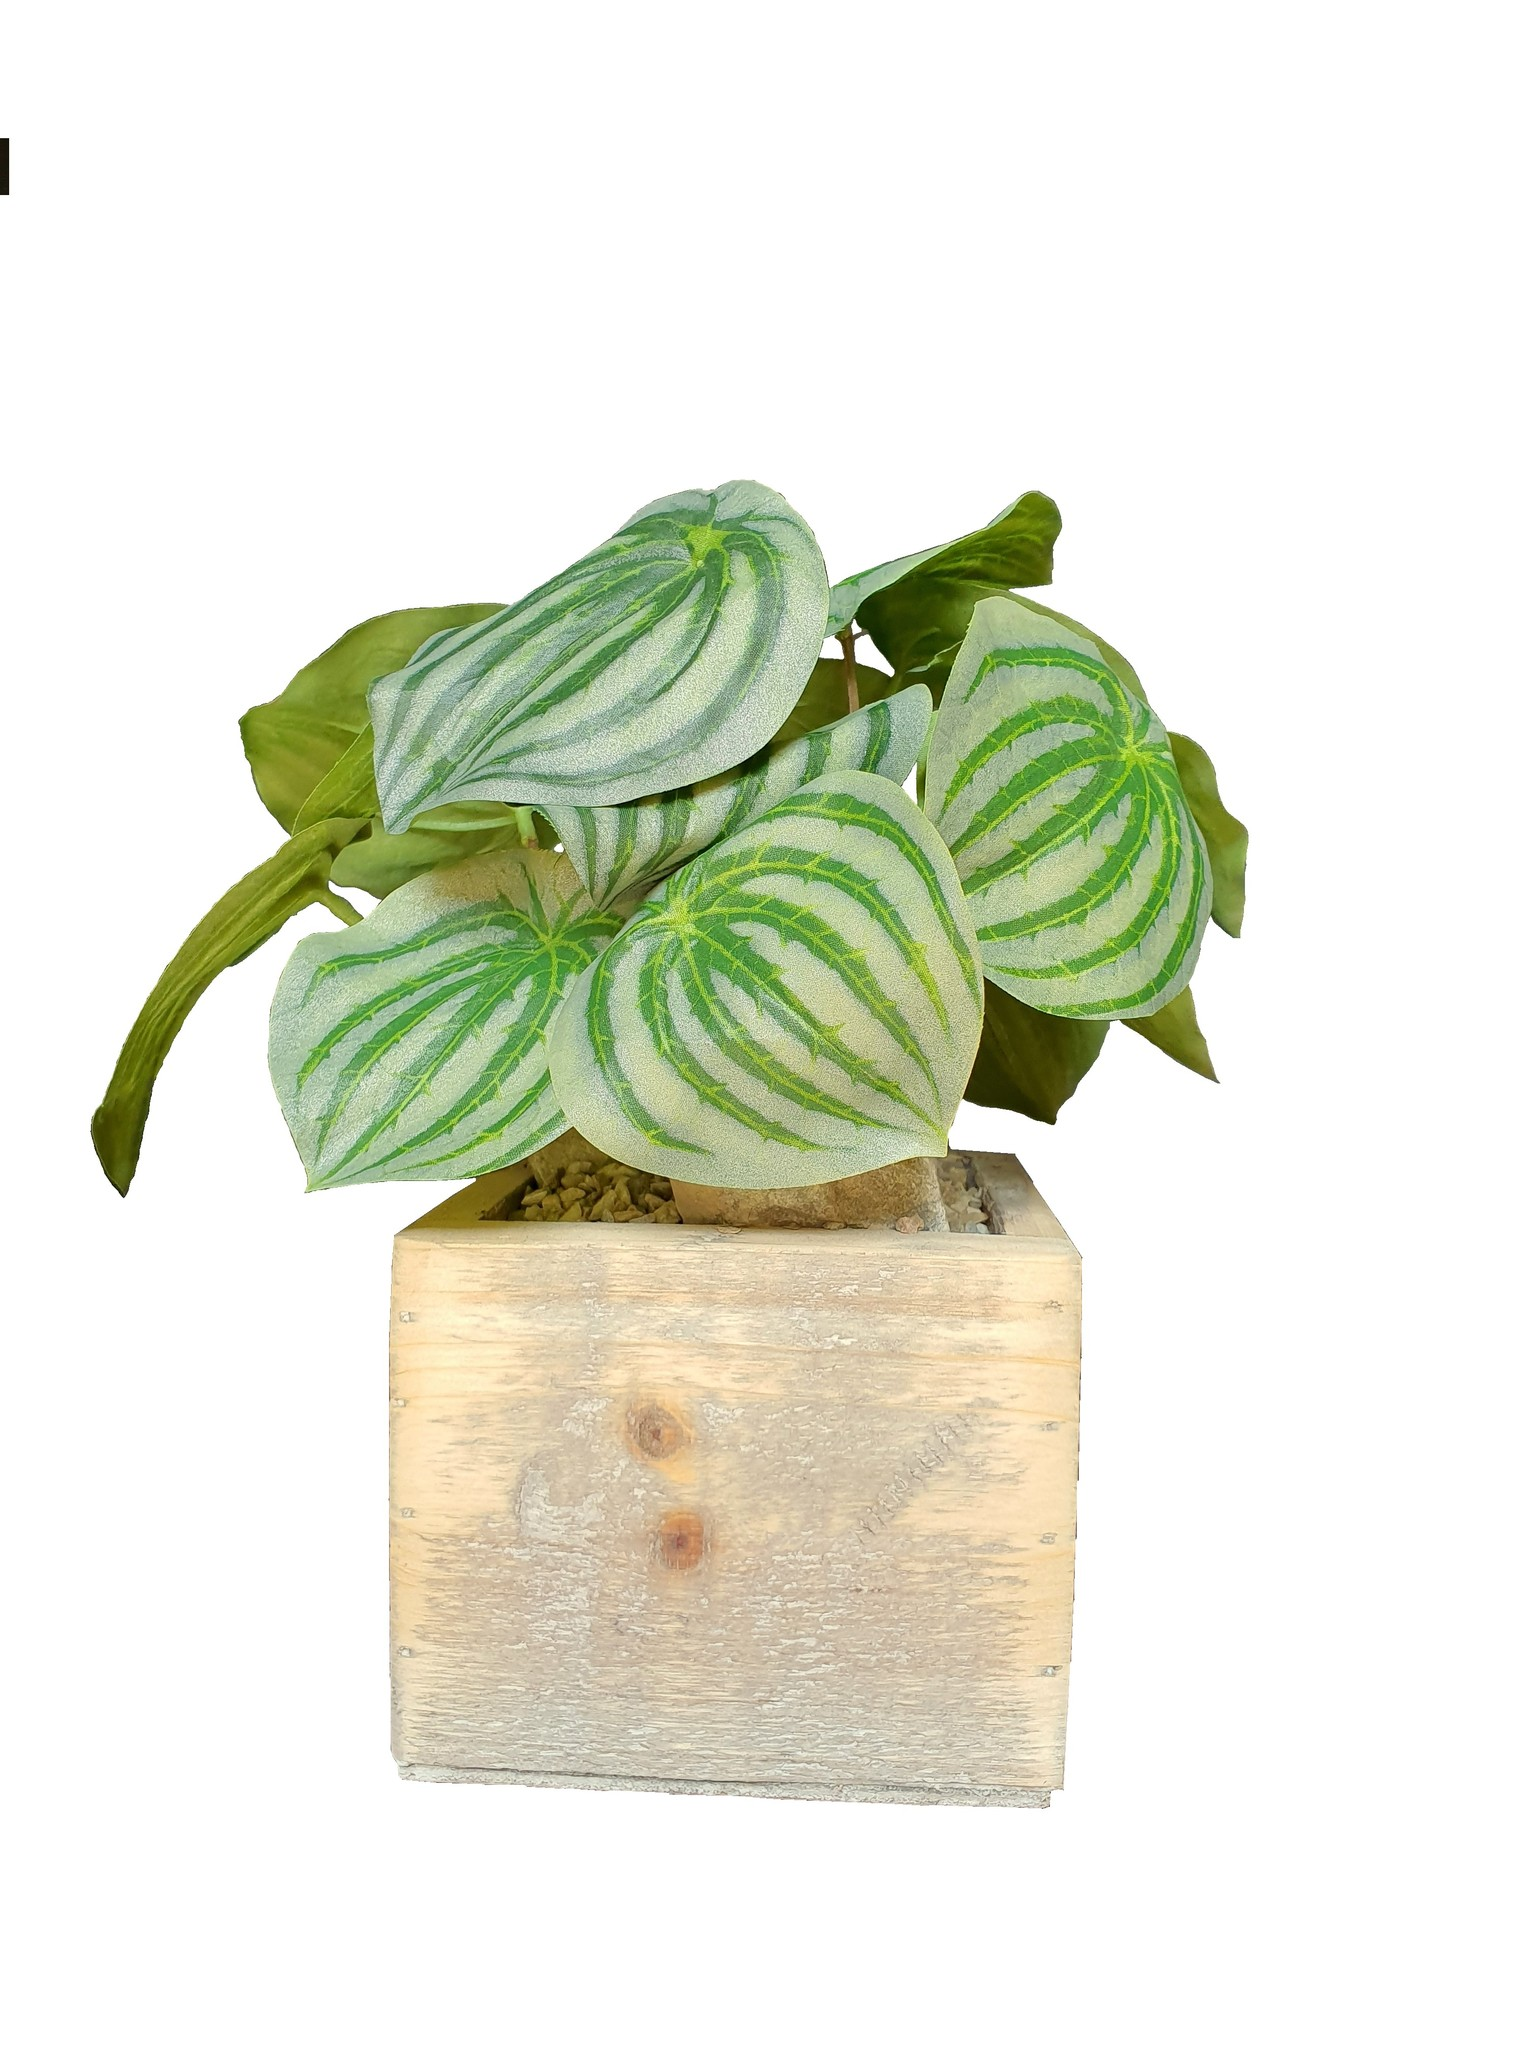 silk arr	old dutch	peperomia J13-1